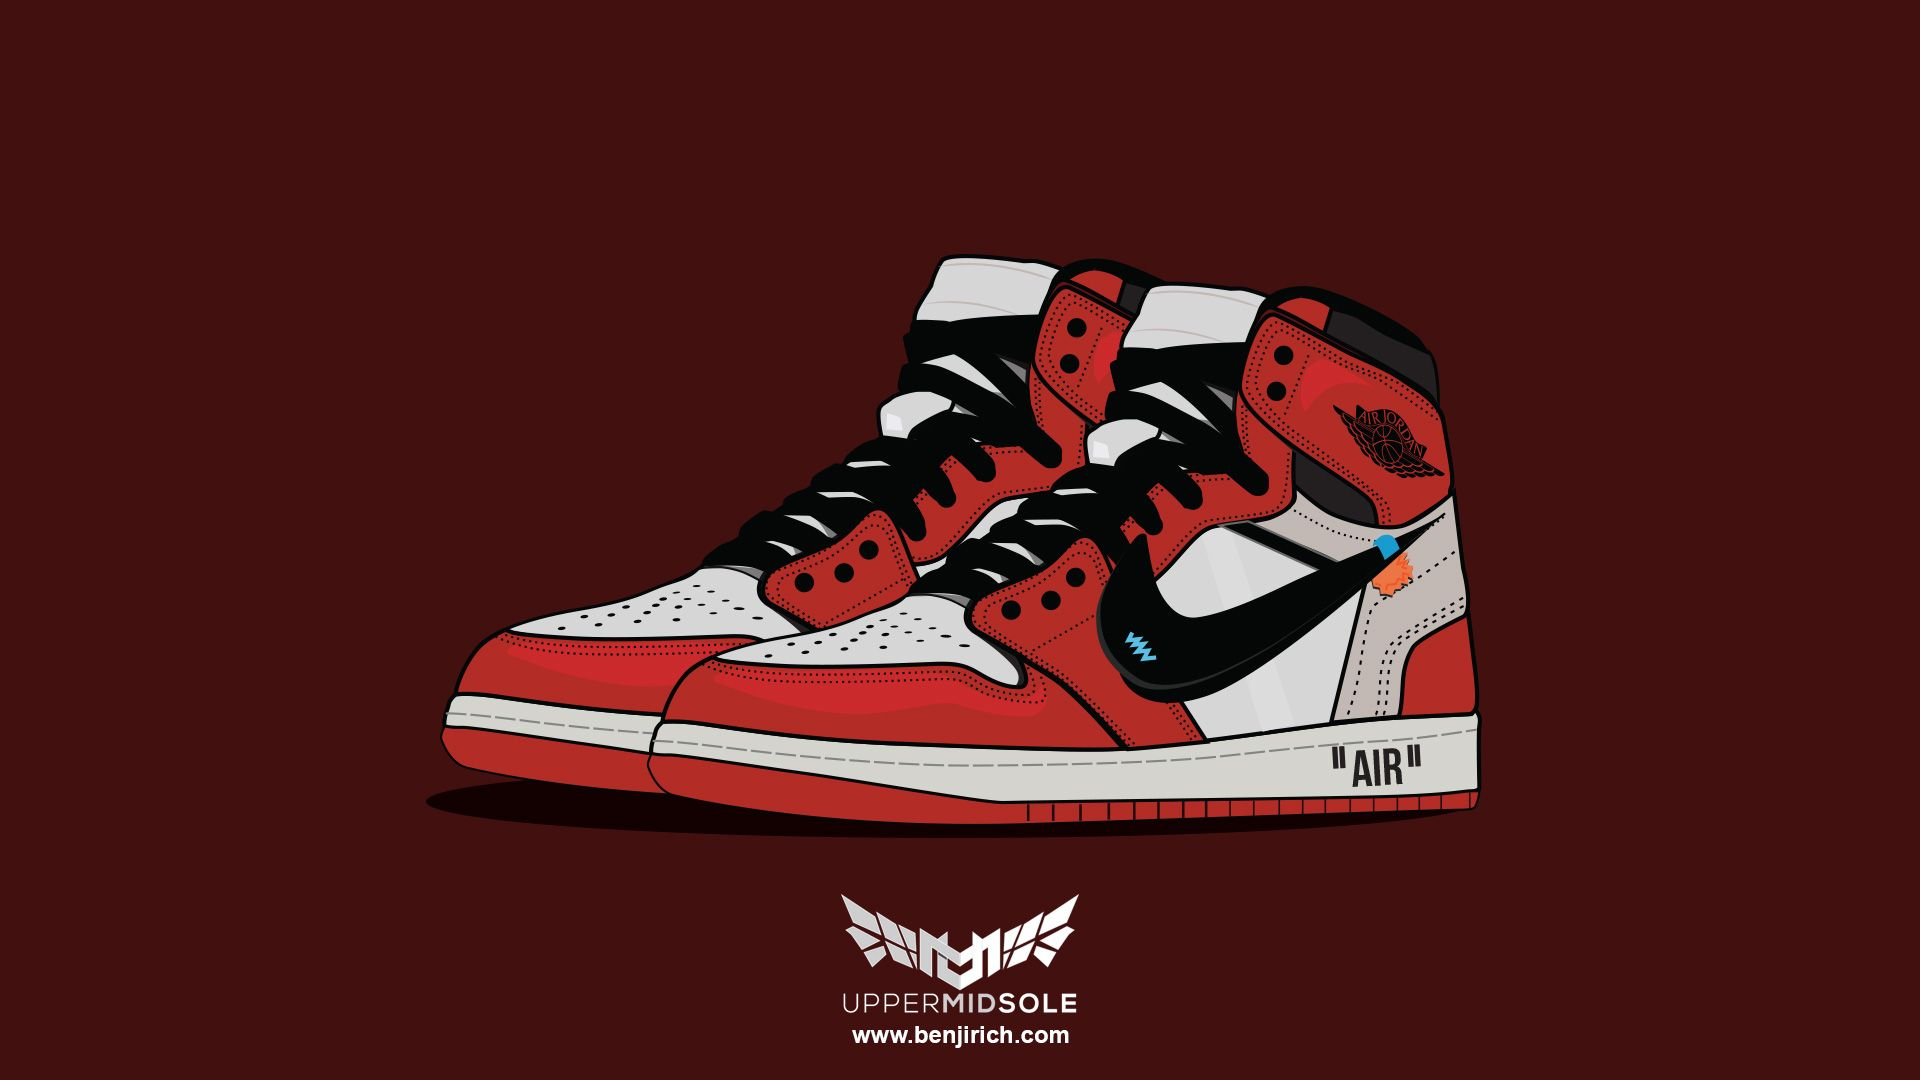 1920x1080 Off-white X Jordan Brand Retro Jordan 1 – Benjirich Media